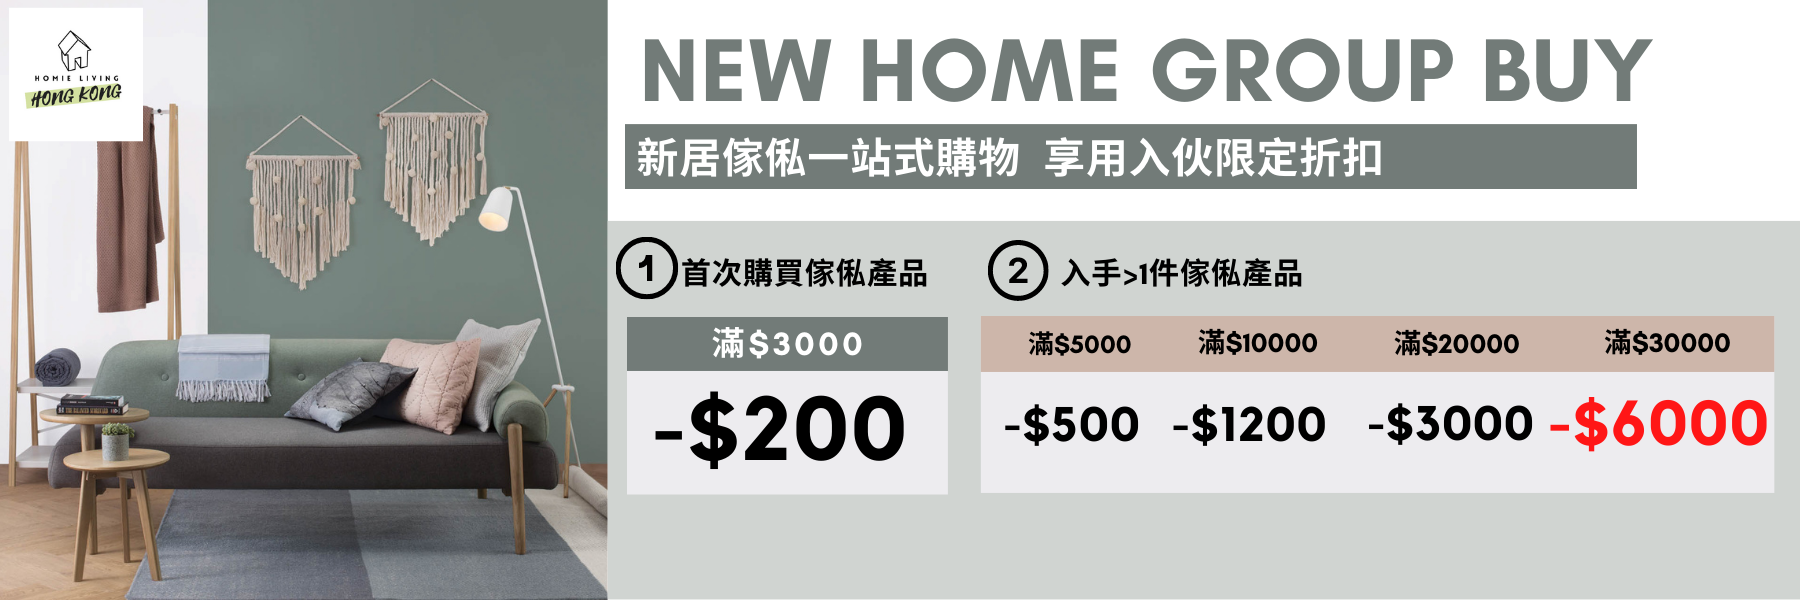 new home group buy